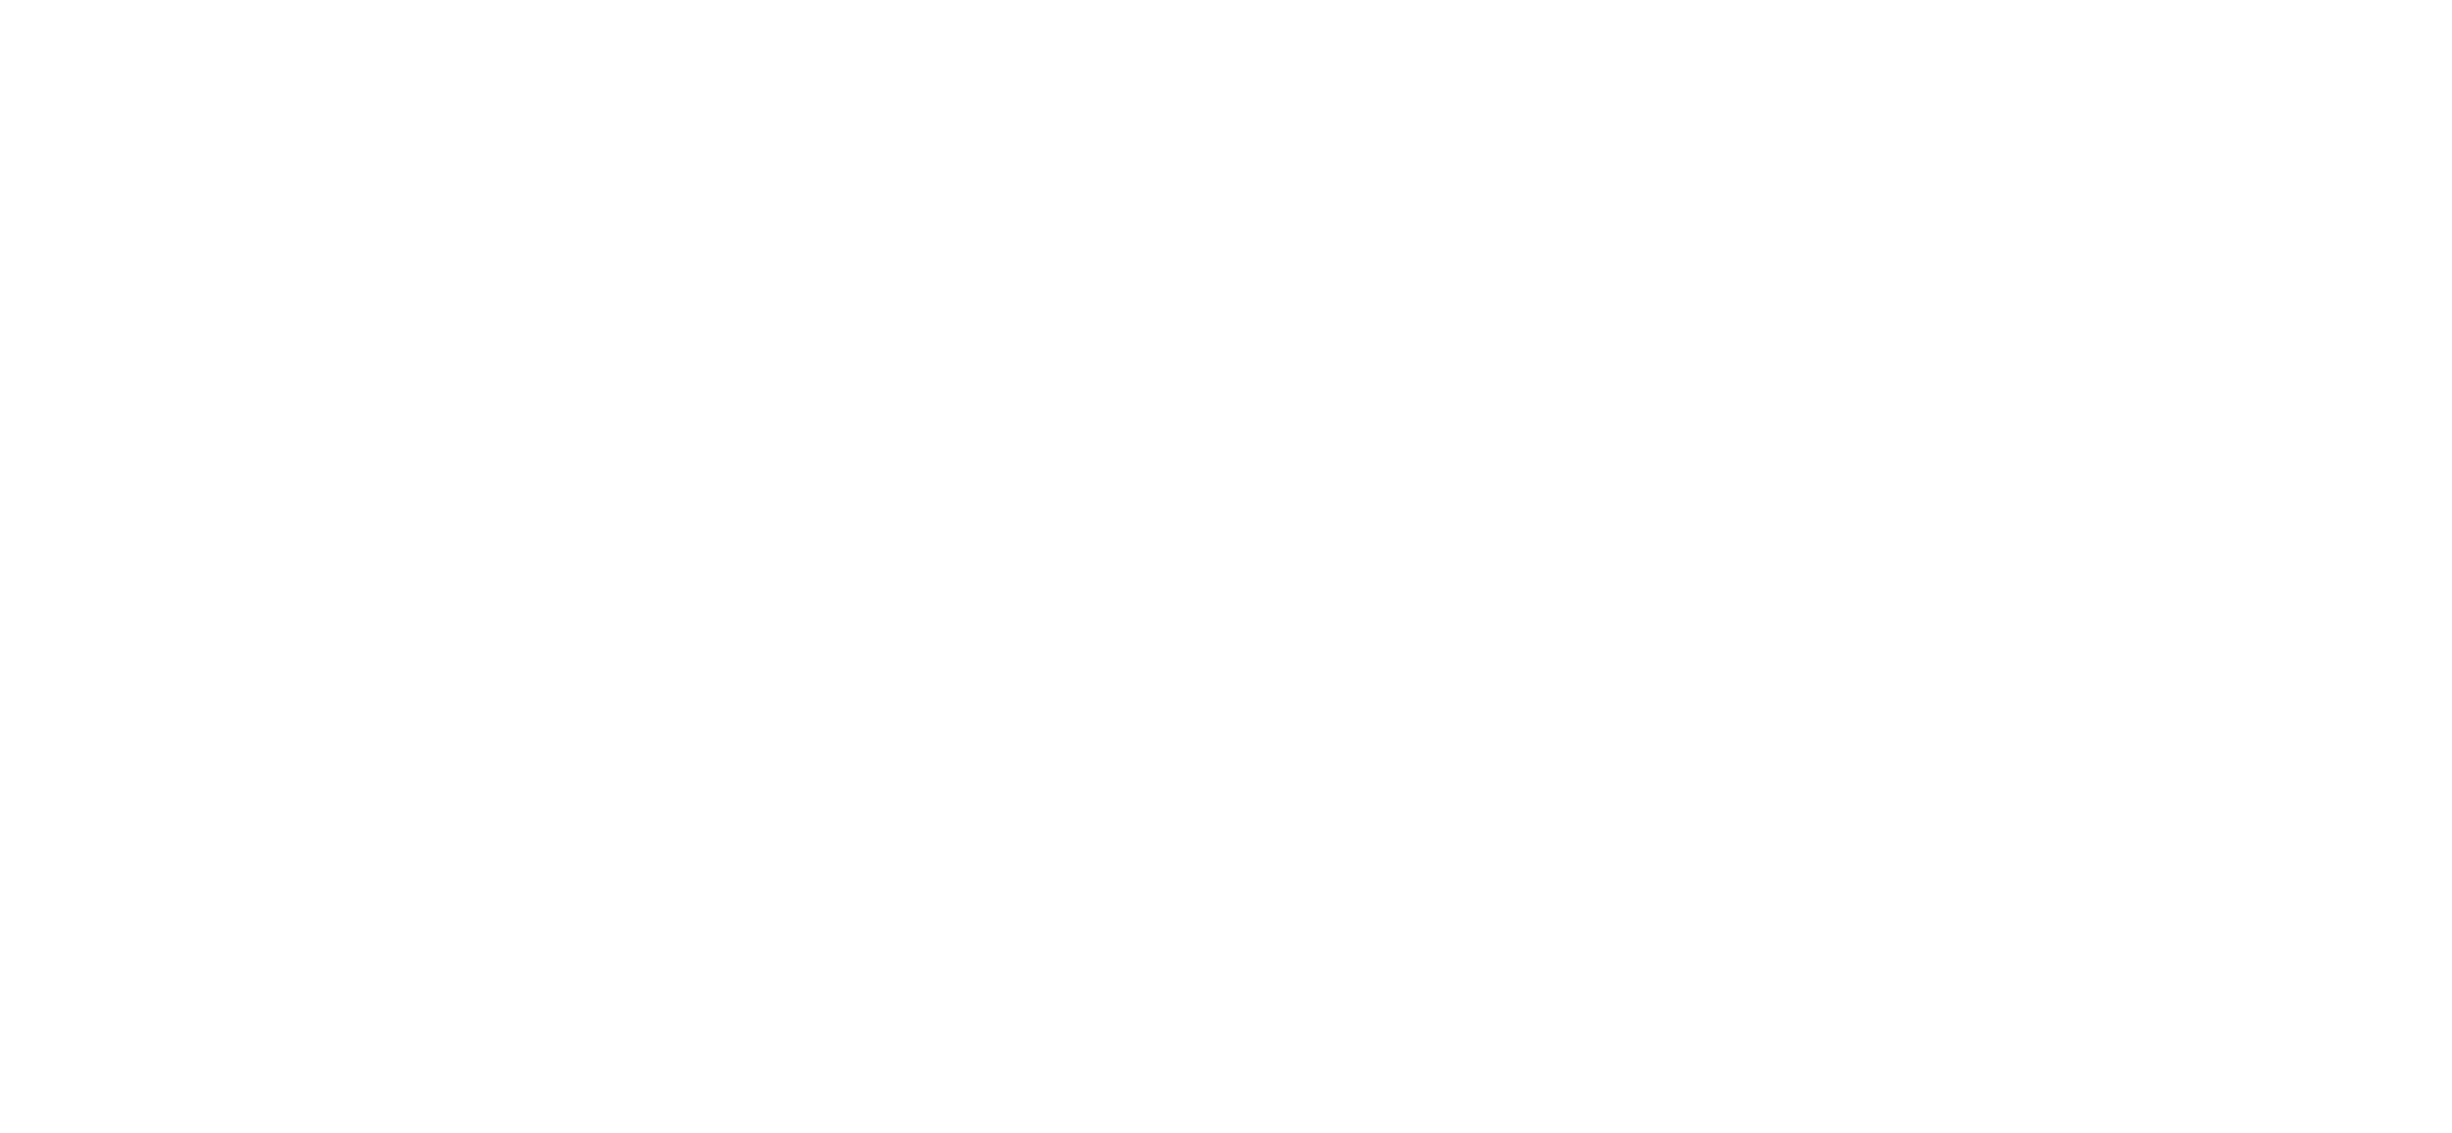 By Design Heroes